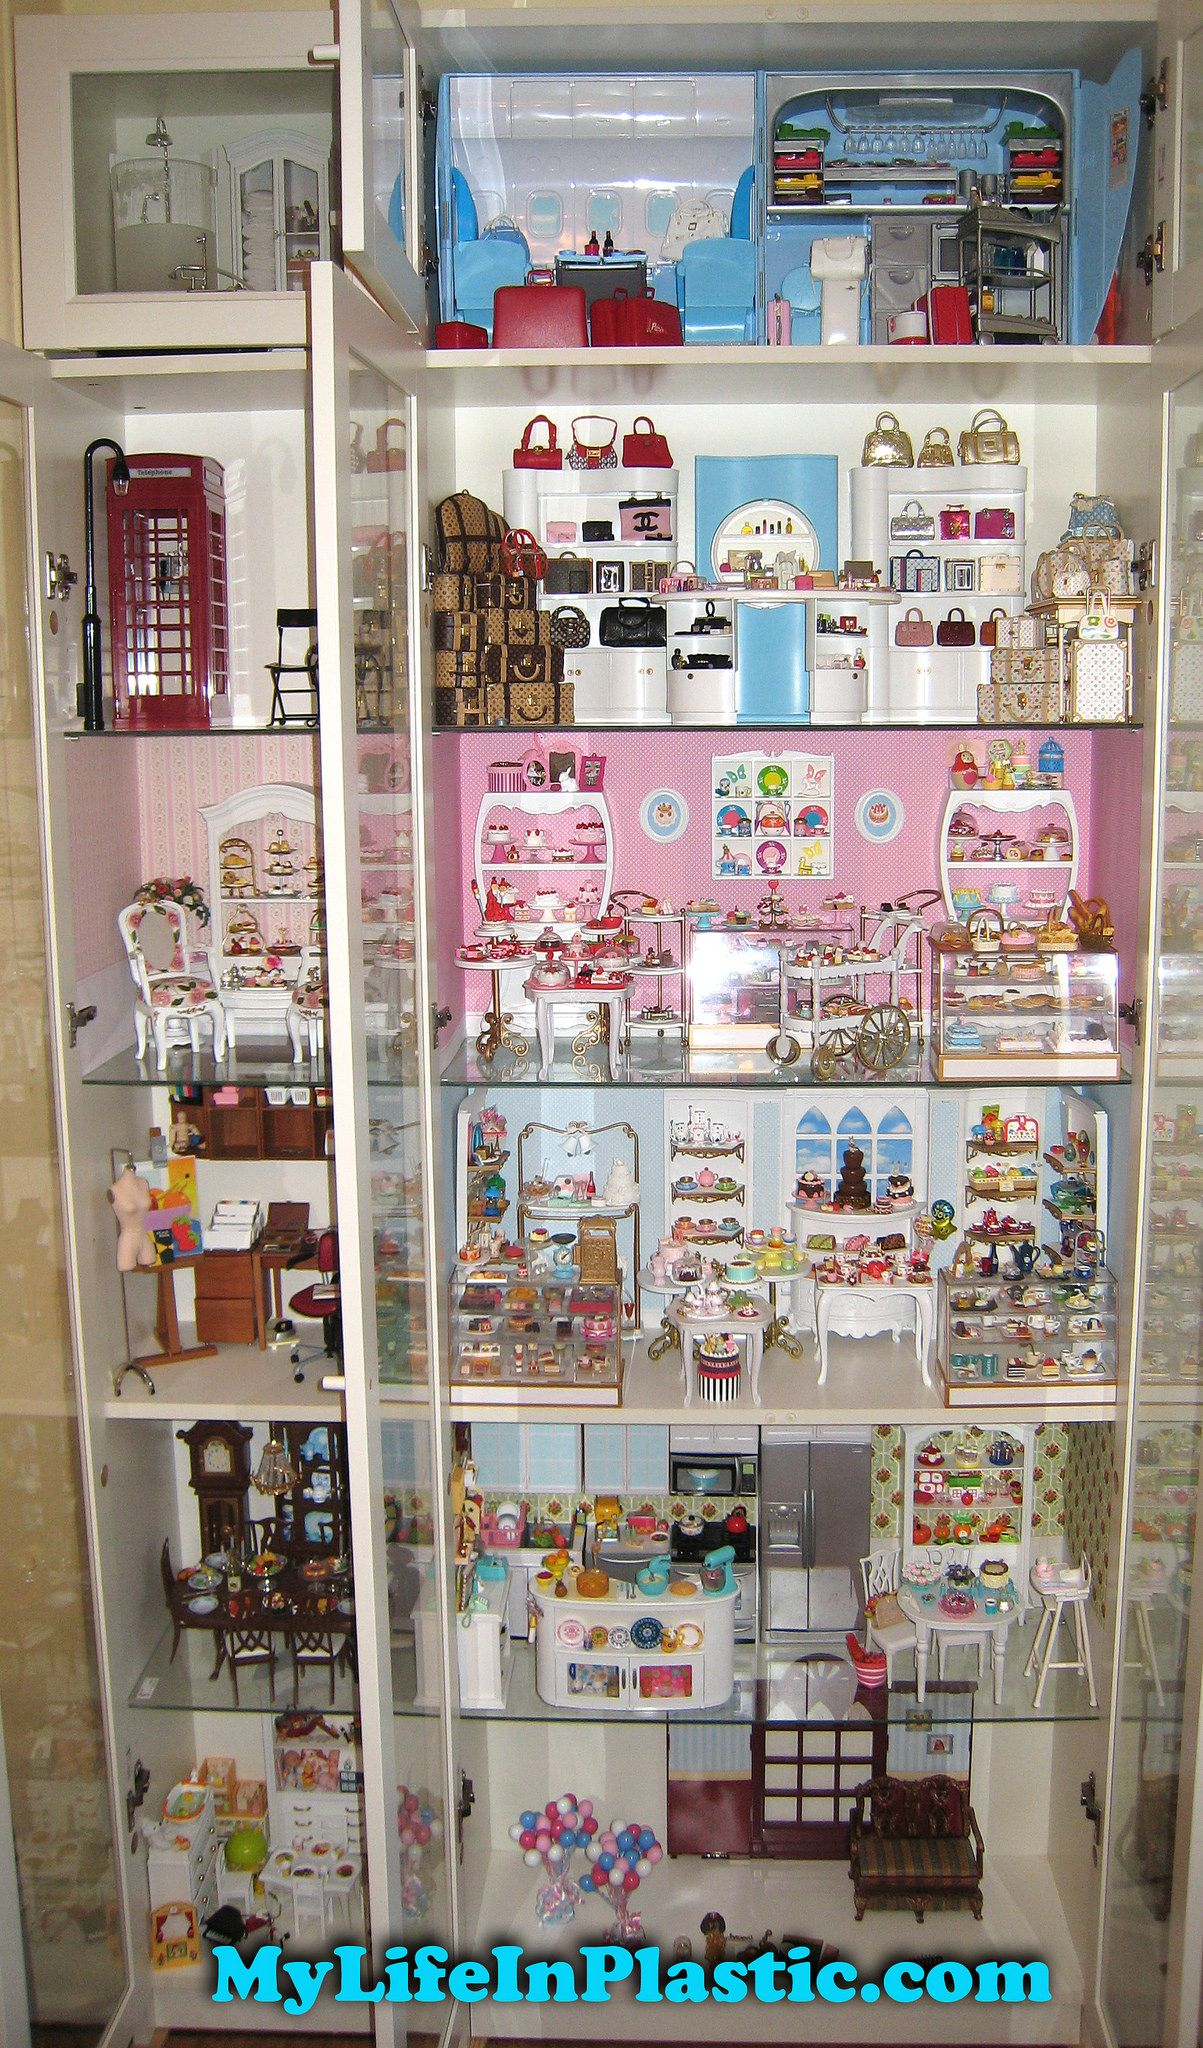 Mylifeinplastic Com Doll Diorama Cabinets Of Wonder Barbie Diorama Barbie Toys Barbie Doll House